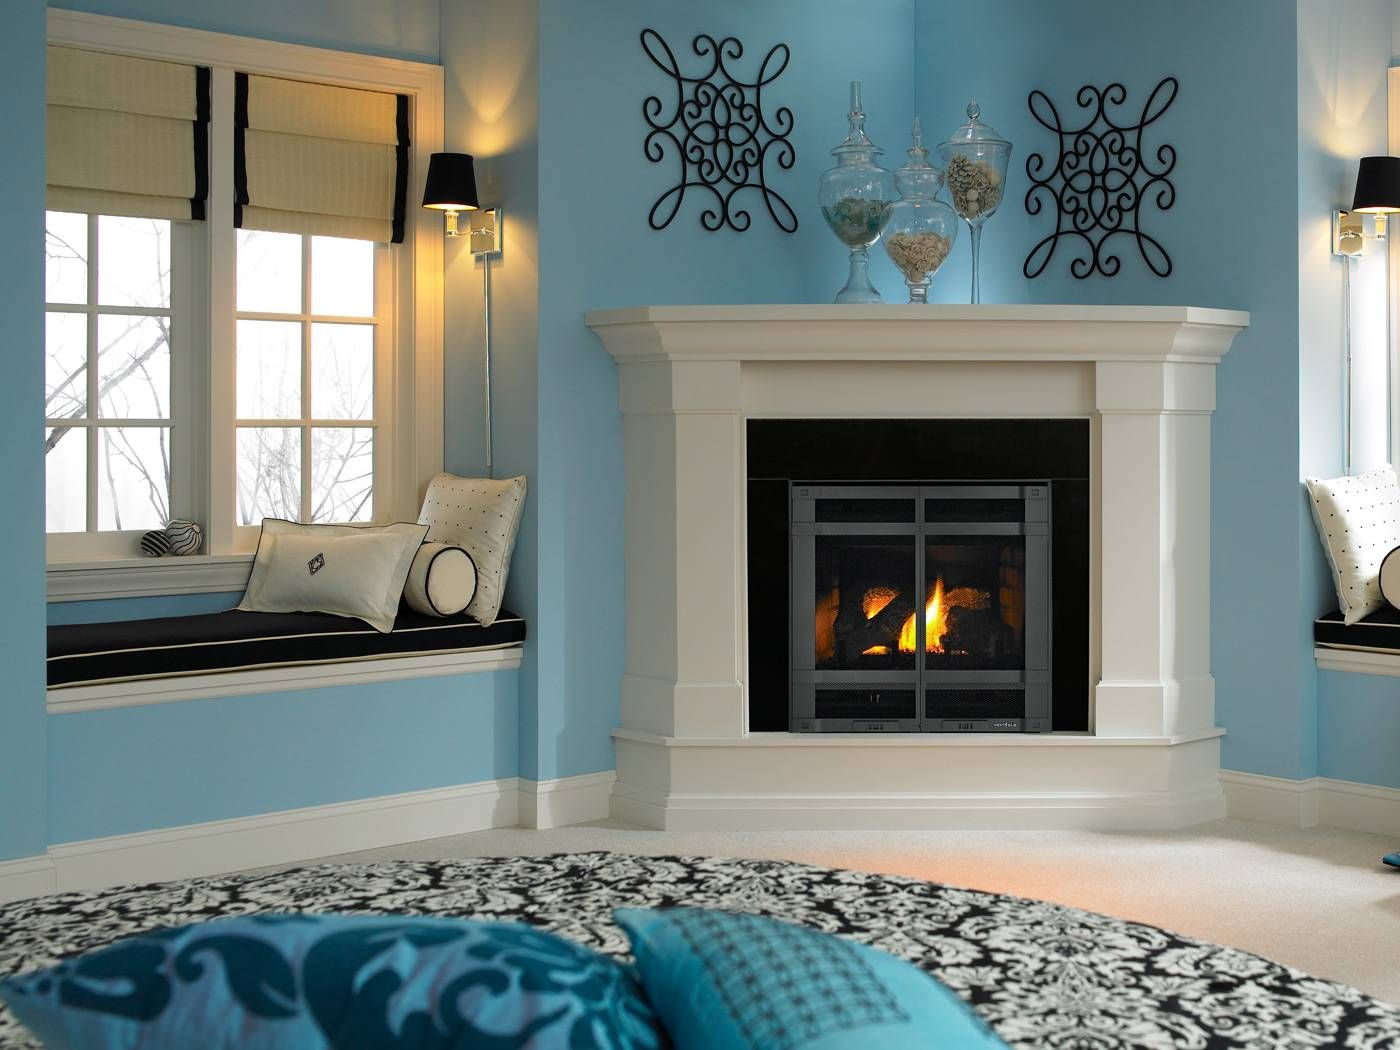 venting fireplaces salaambank vented options fireplace s gas natural less